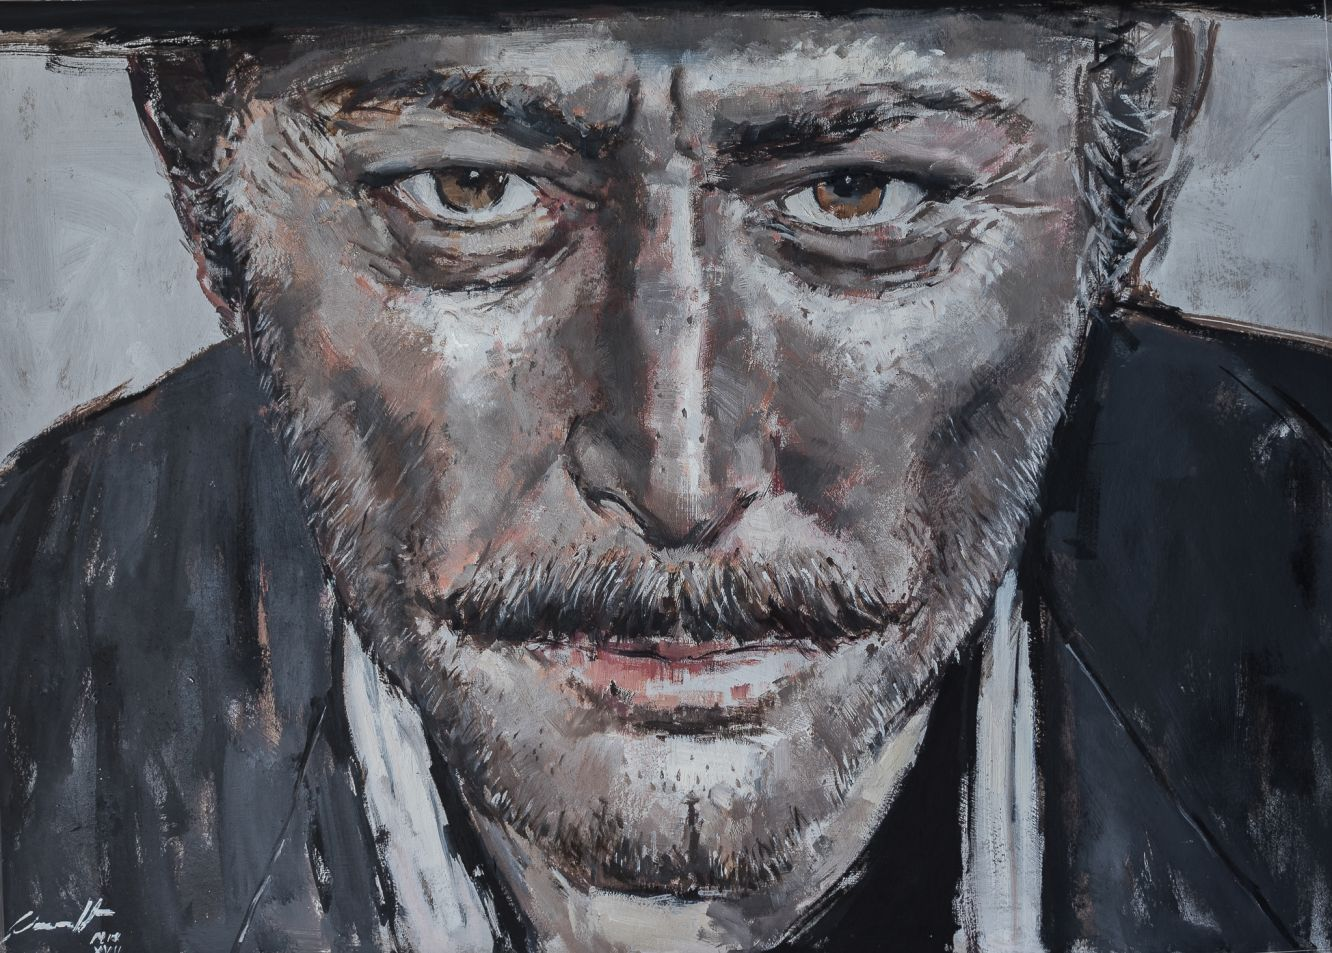 Retrato Lee Van Cleef